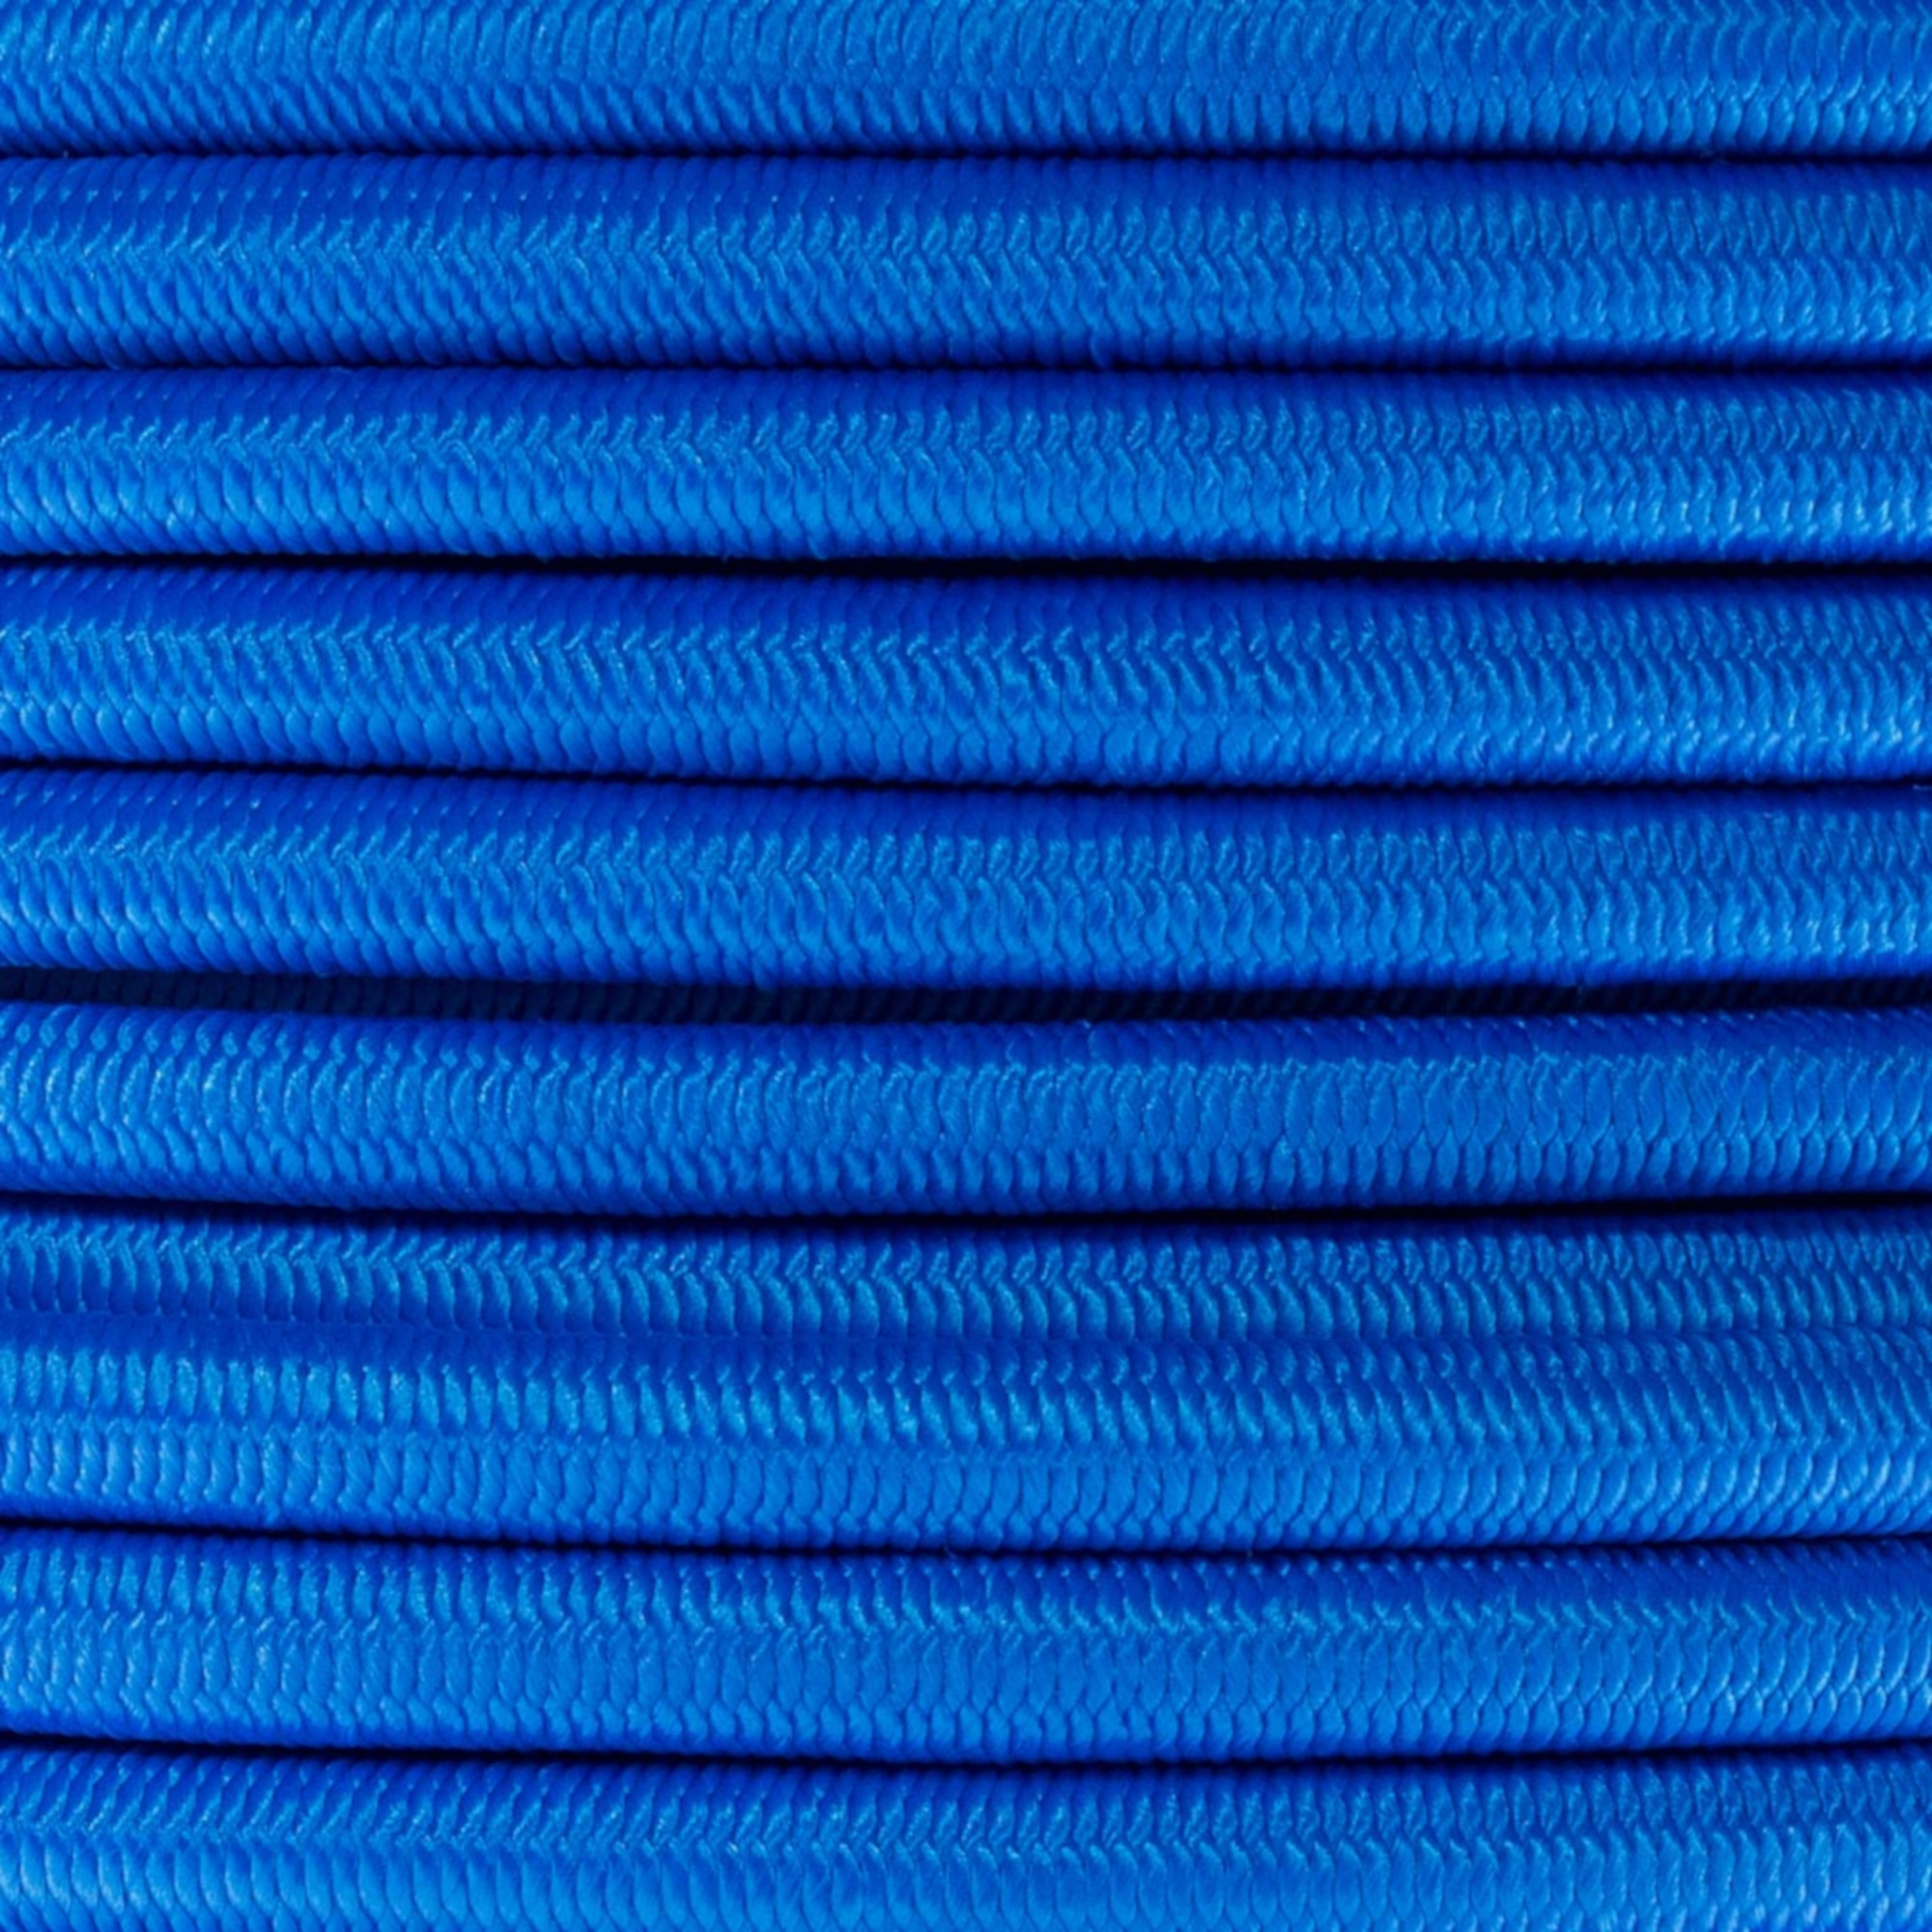 PARACORD PLANET 3/8 Inch Elastic Bungee Nylon Shock Cord Stretch String Crafting - Various Colors - Multiple Lengths - Made In USA